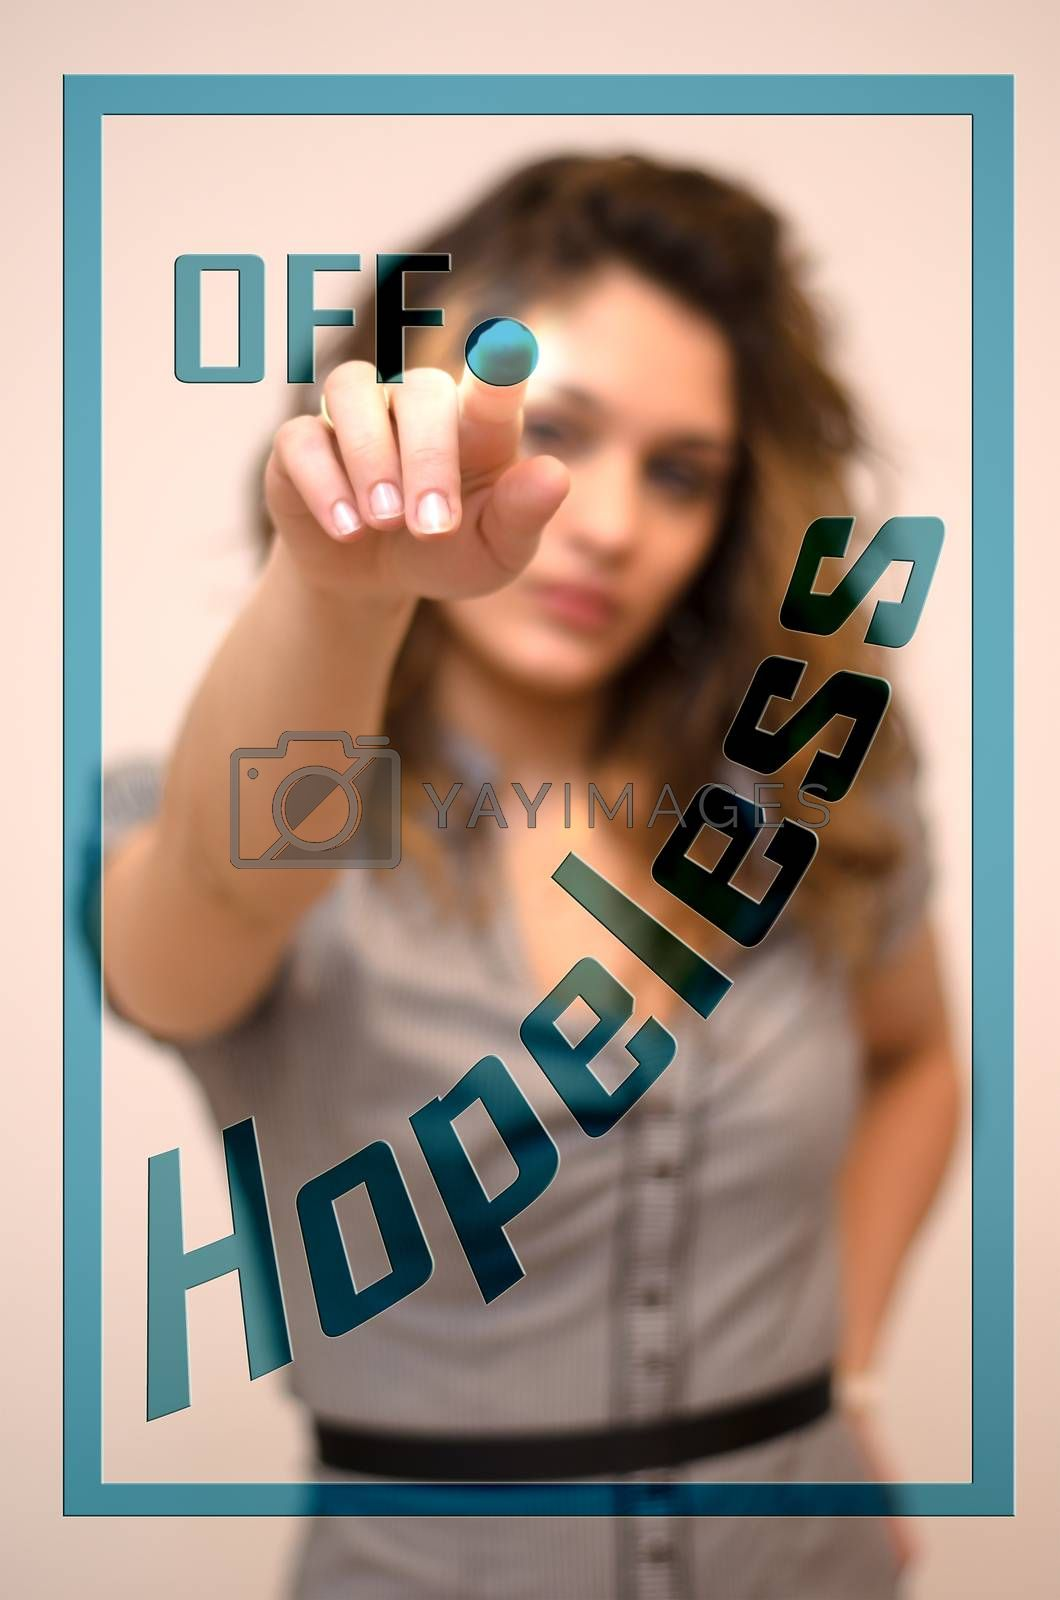 Royalty free image of woman turning off Hopeless on panel by vepar5